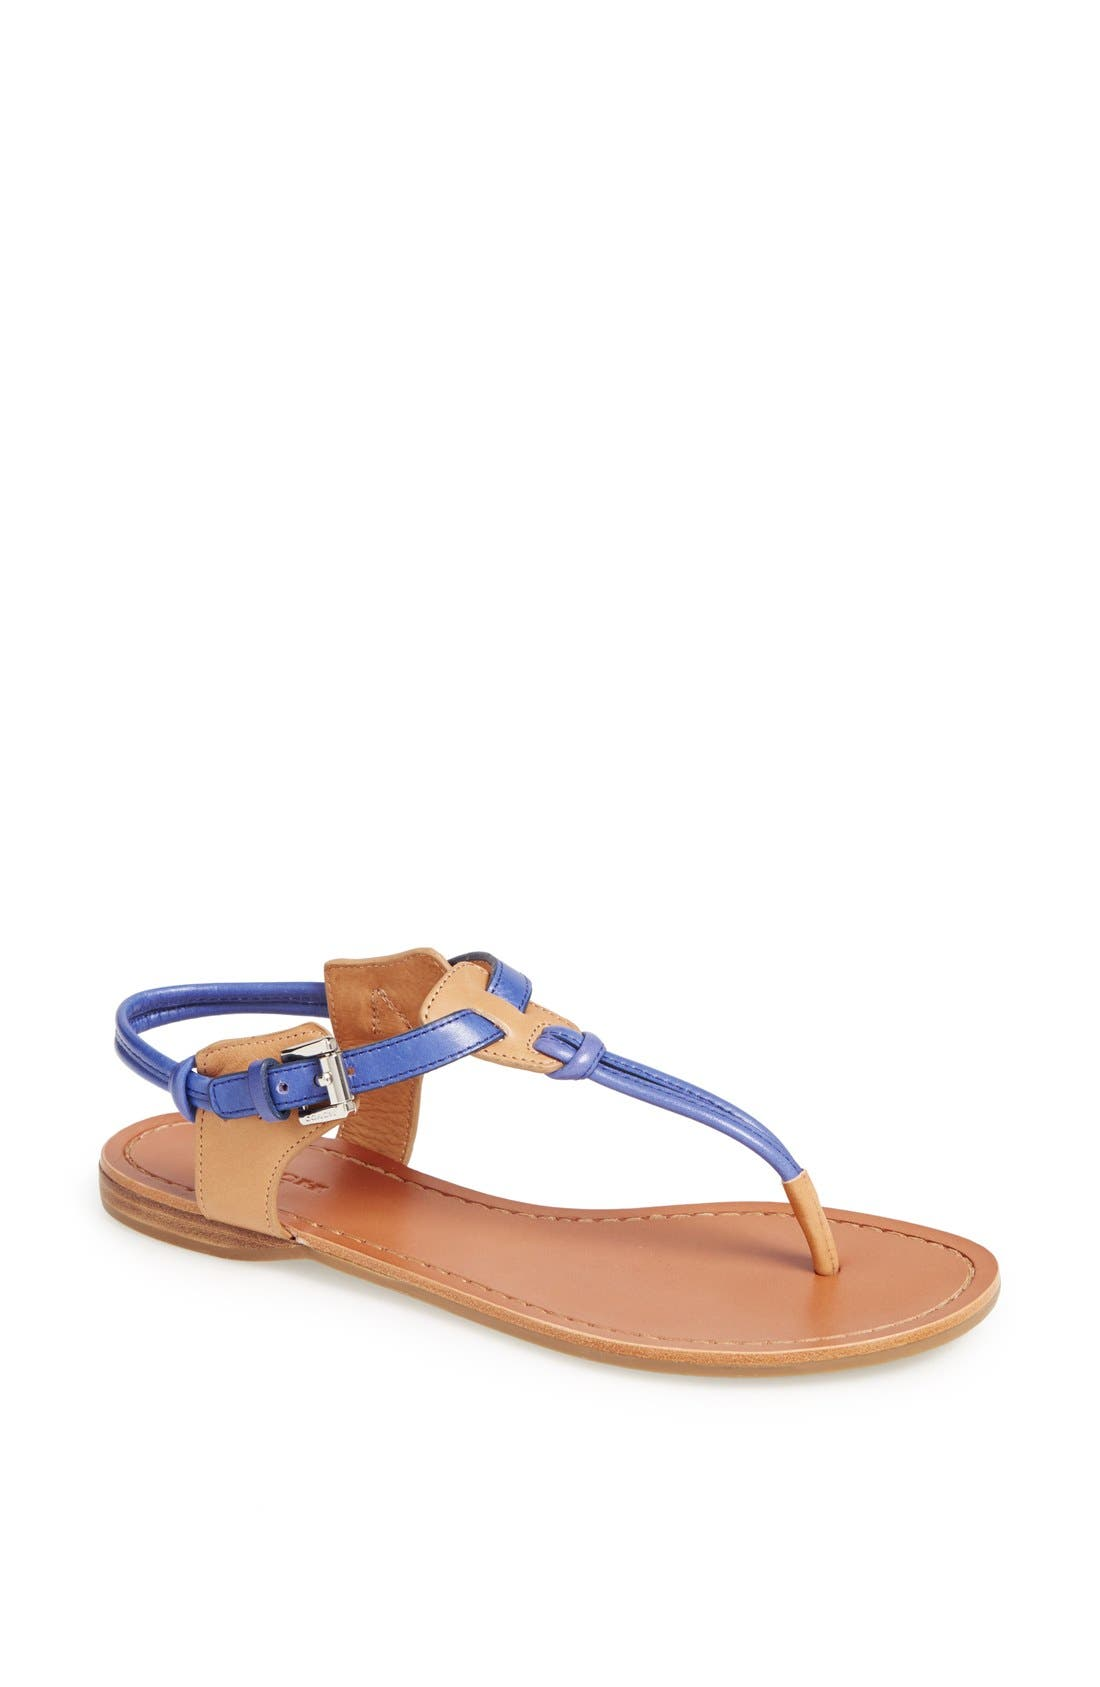 Alternate Image 1 Selected - COACH 'Clarkson' Sandal